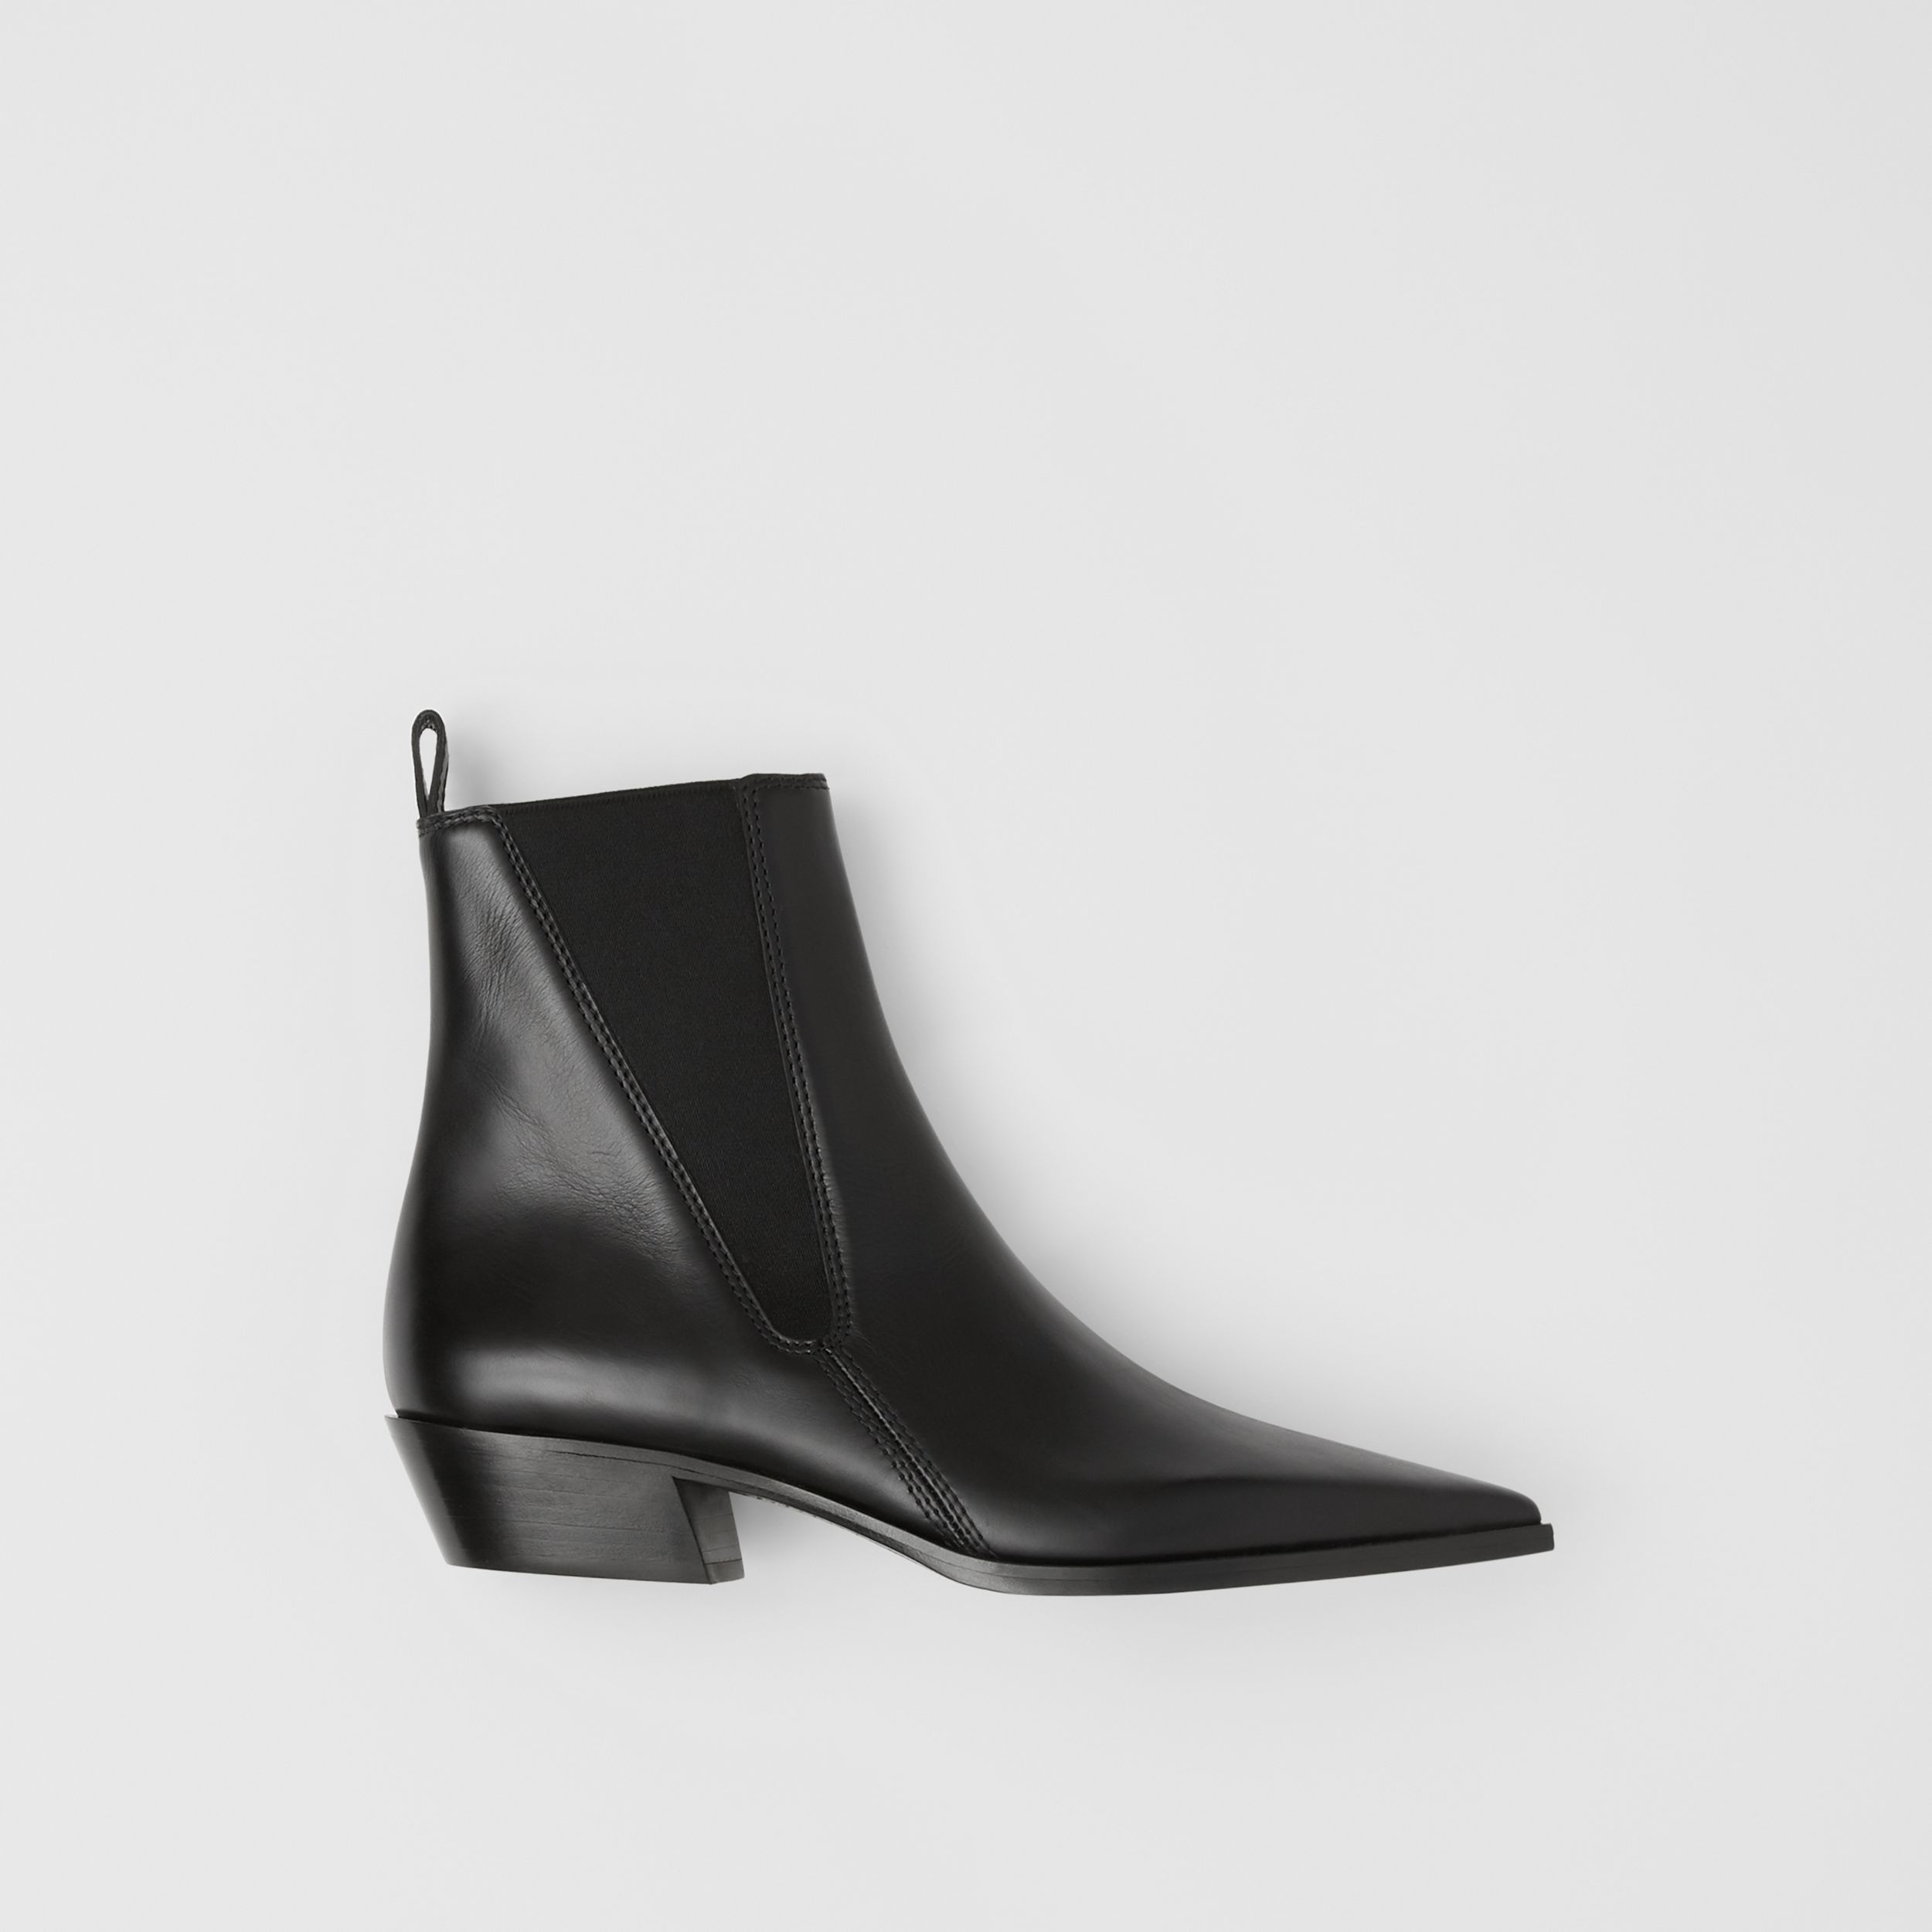 Leather Point-toe Chelsea Boots in Black - Women | Burberry United Kingdom - 1